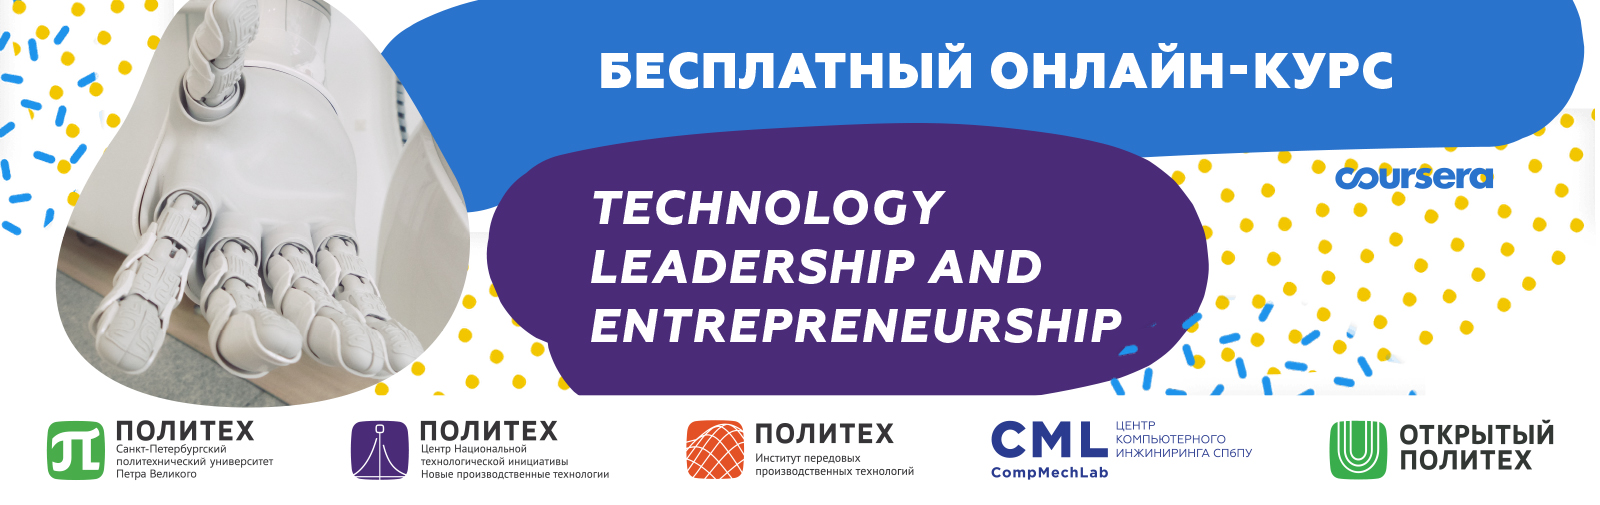 курс Technology Leadership and Entrepreneurship